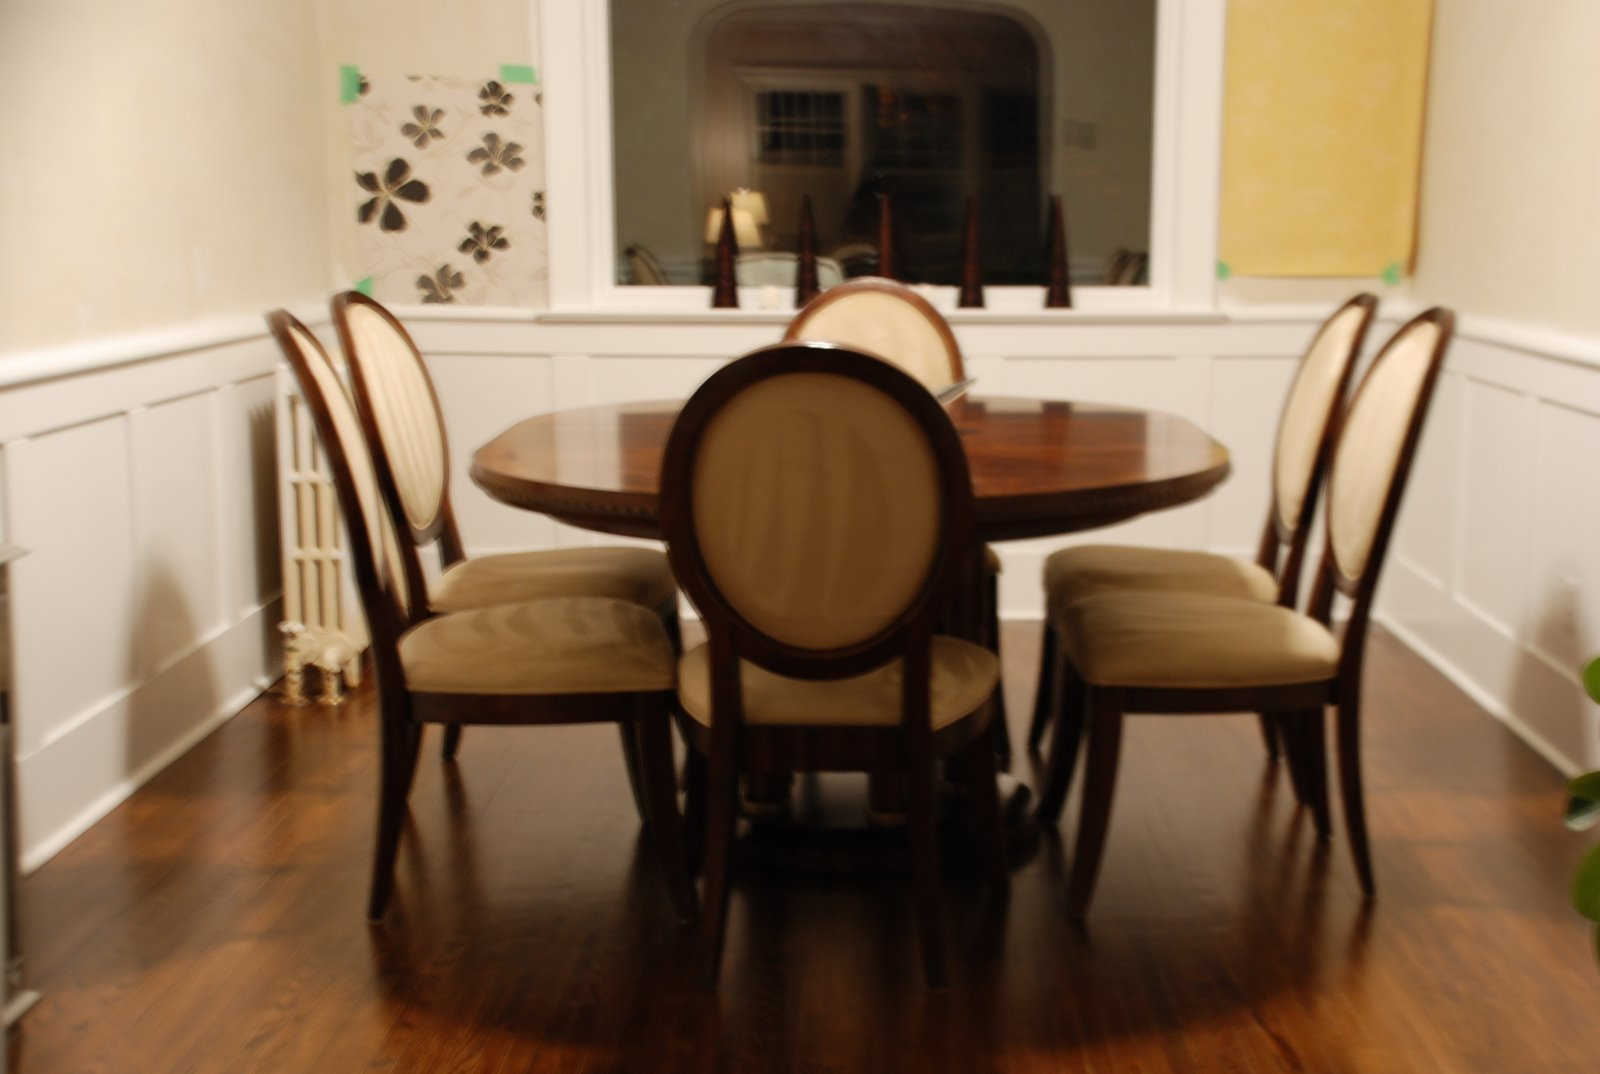 dining room renovation, diy home project for beginners, diy wainscotting